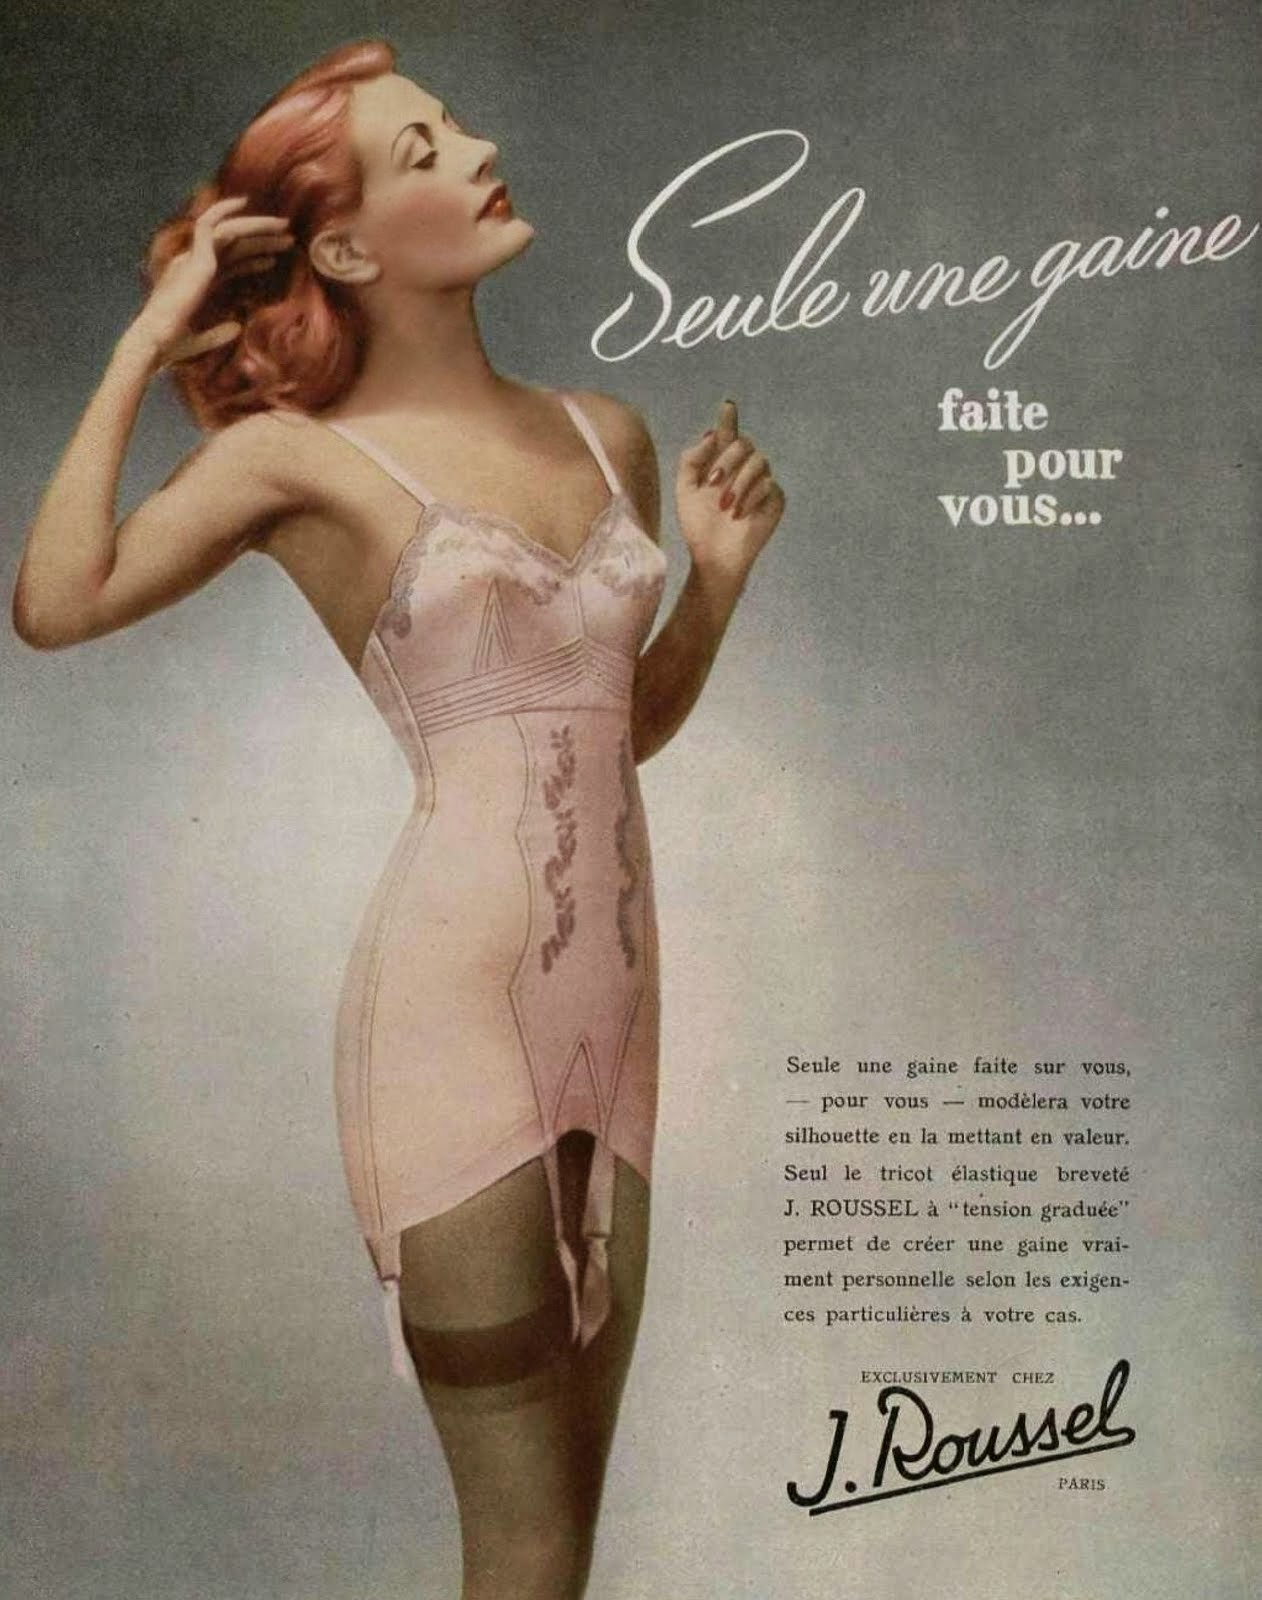 1940s pink french girdle corset vintage advertisement